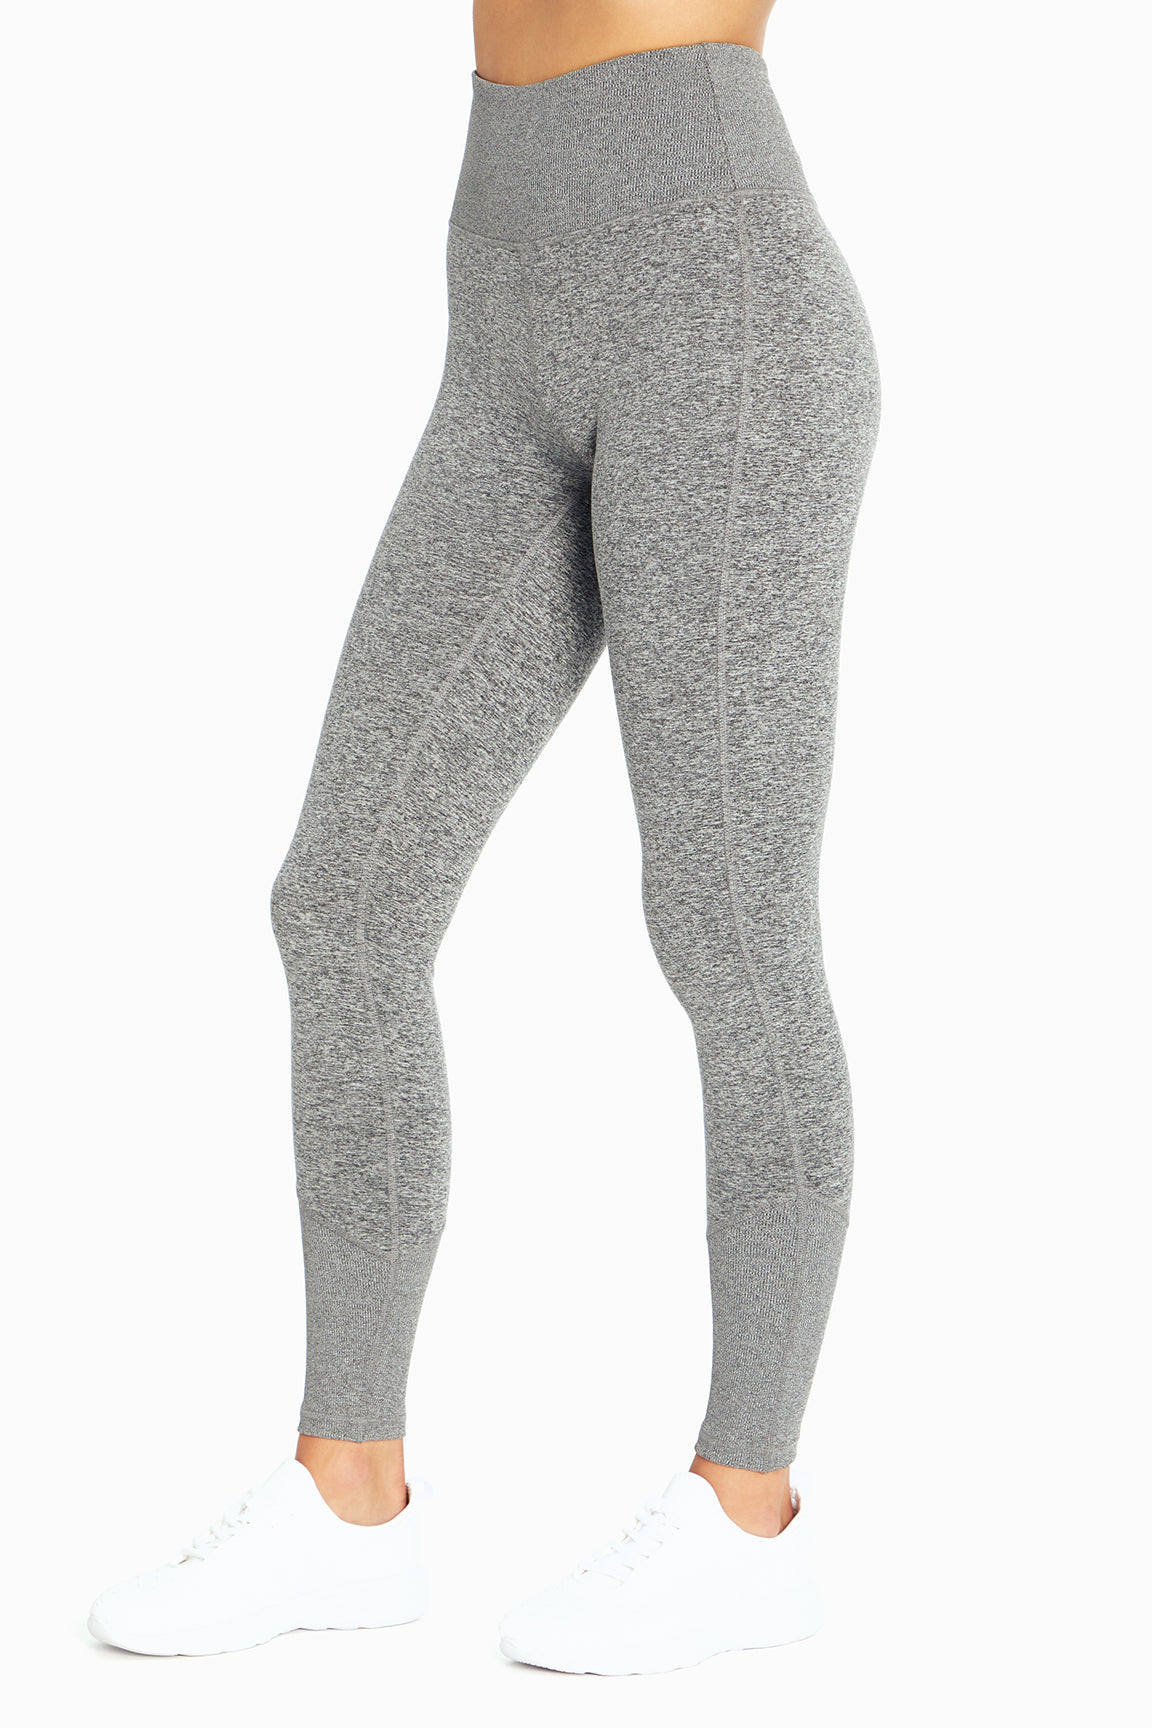 Cozy Heather Legging (H. Black)